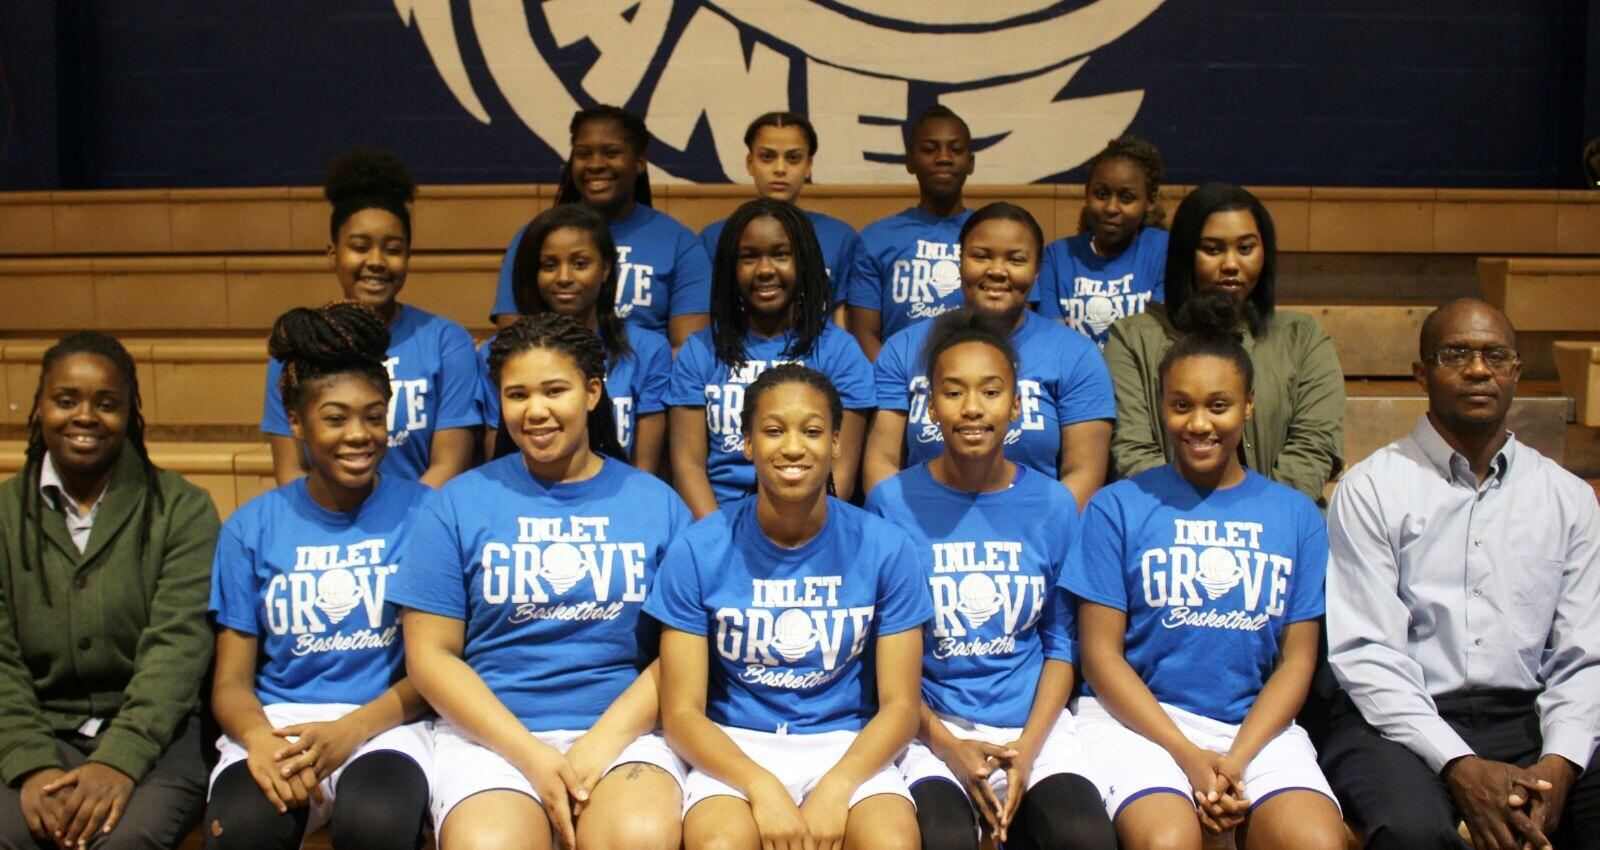 LADY CANES FAMILY: Reminiscing on their season are the ballers of 2016-2017: (from front left) Coach Sasha Barnard, Jessica Dominique, Janae Brewer, Jasmine Simmonds, Toni Andrews, Nehani Abreu, Coach Darrin Kelly; (2nd row): Tatyana Moise, Kathleen Morvan, Carlteria Phillips, Flolaine Francois, Yolanda Gena; (3rd row): Chanique Coleman, Jennifer Parisot, Briana Cason, Briana Bolivar.